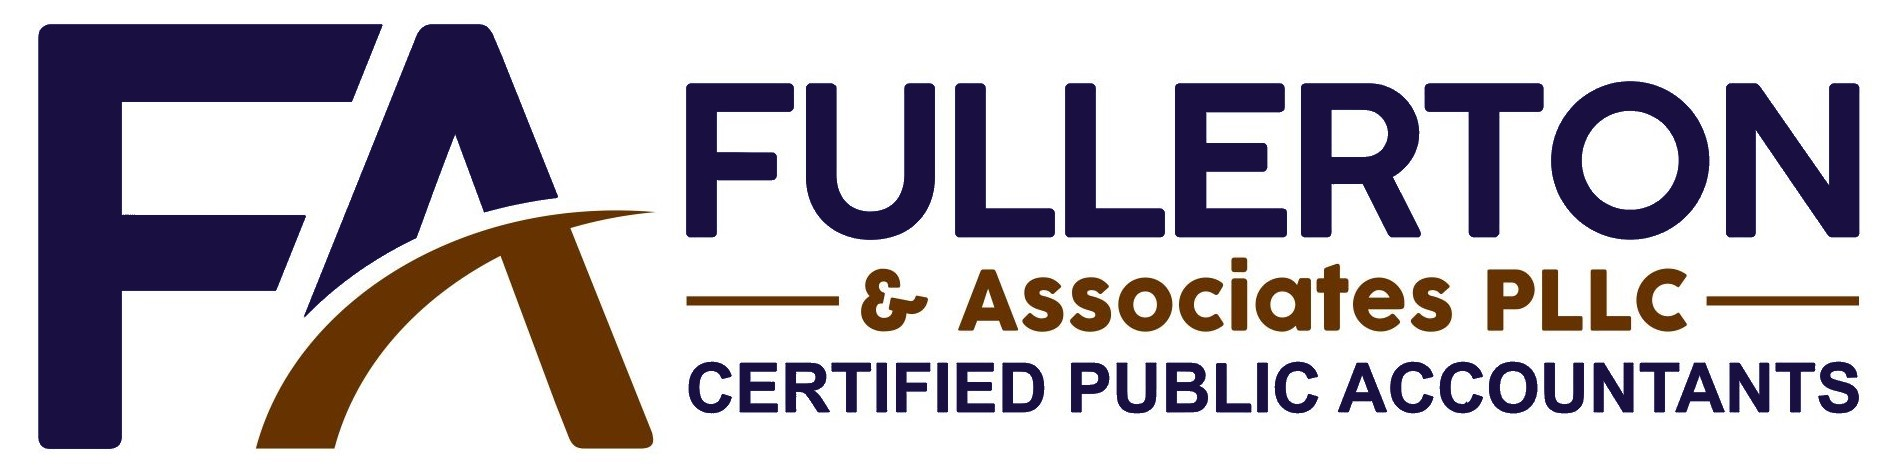 Abilene, Texas CPA Firm | State Tax Forms Page | Fullerton & Associates PLLC